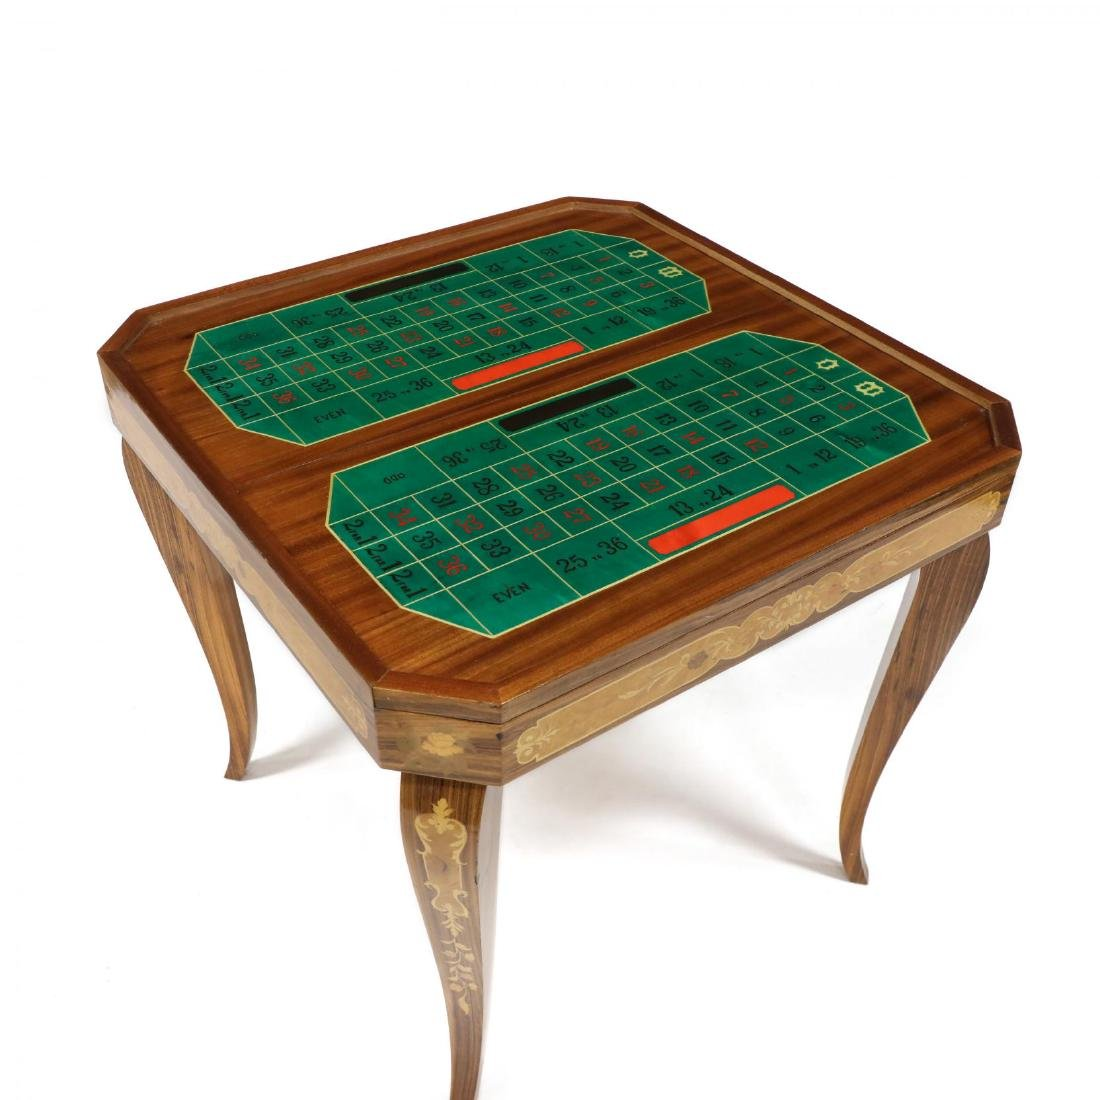 Italian Marquetry Inlaid Multi-Games Table - 7